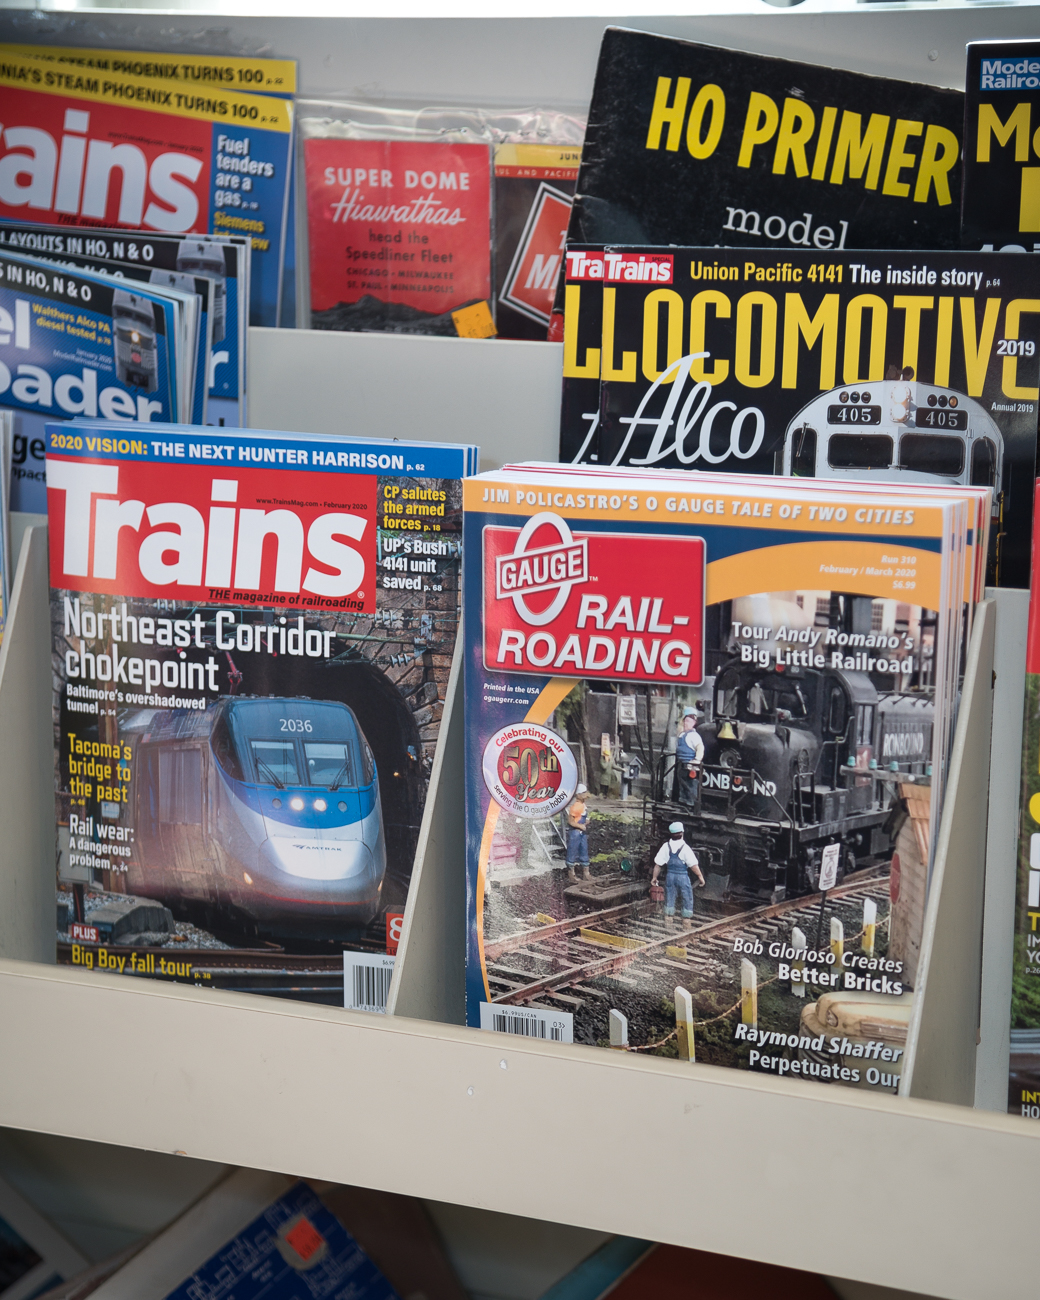 There are several hobby train-related magazines in stands in the front of the store. / Image: Phil Armstrong, Cincinnati Refined // Published: 2.27.20